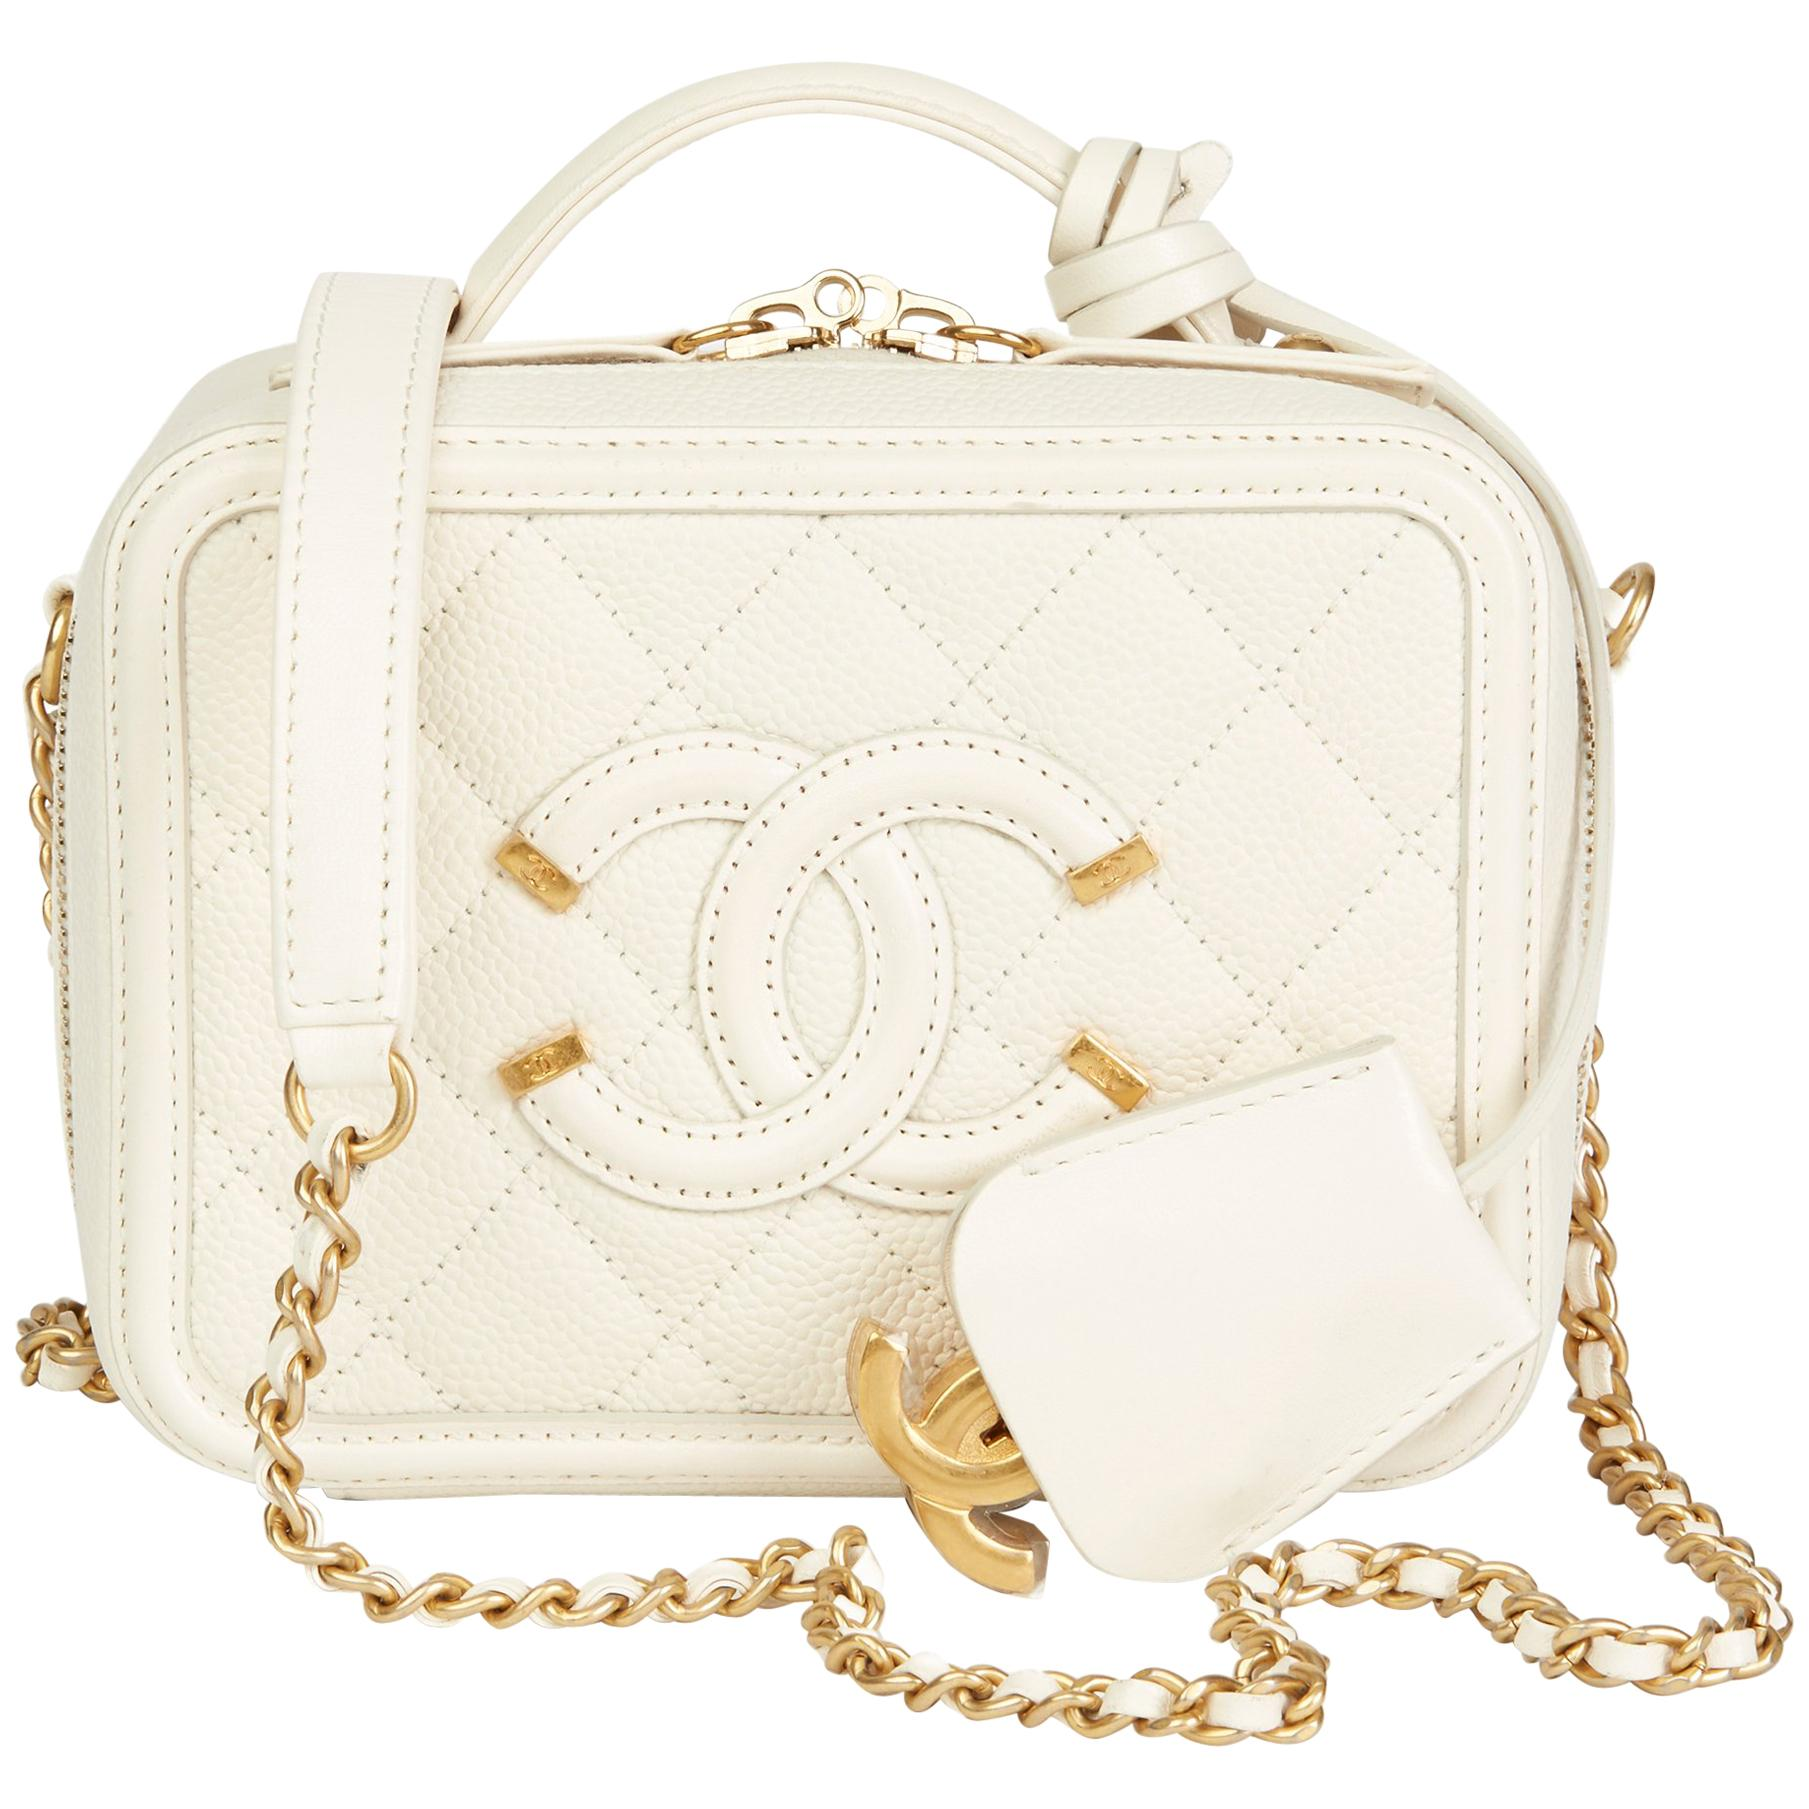 de6effe07b09e7 2018 Chanel Light Beige Quilted Caviar Leather Small Filigree Vanity Case  at 1stdibs